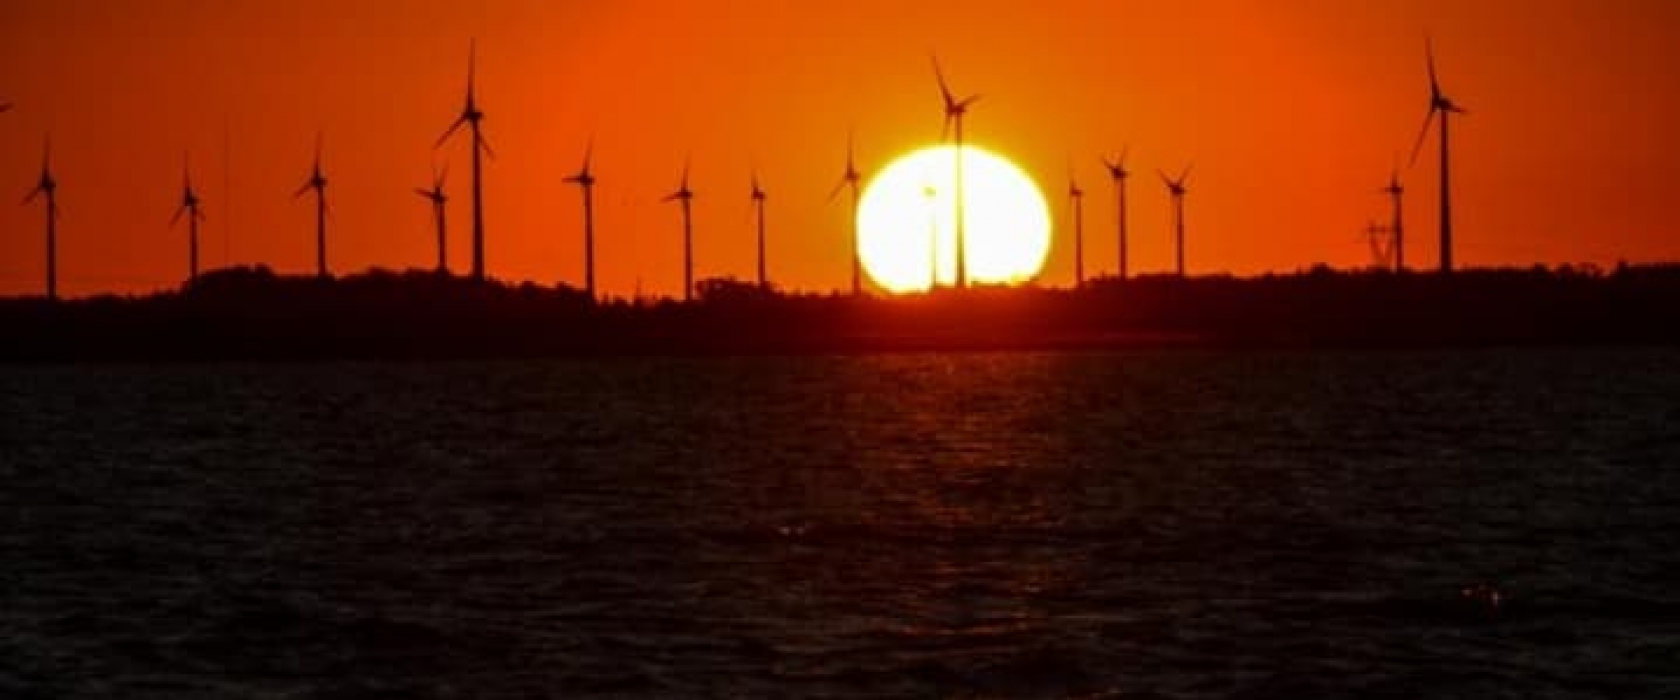 Can we afford to use 100% Renewable Energy?